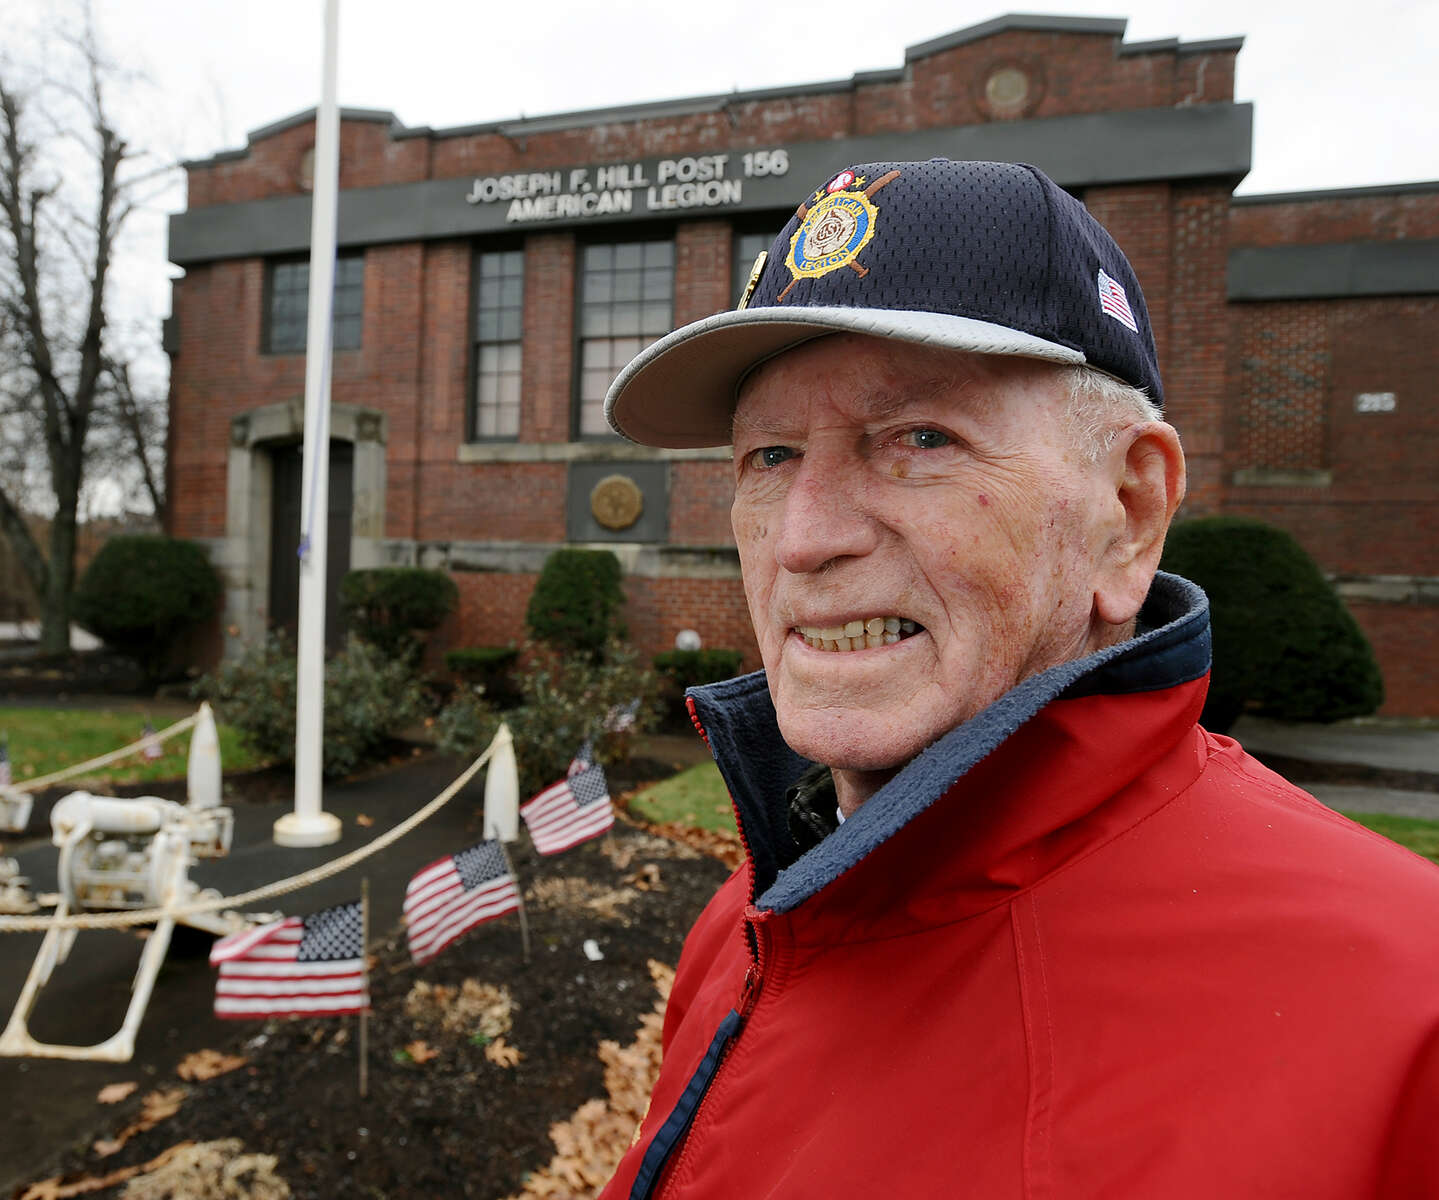 11/22/19-- WALTHAM-- John P. {quote}Jake{quote} Comer, of Quincy, Past National Commander of the Amnerican Legion, in front of the Joseph F. Hill American Legion Post 156 in November 2019. [Daily News and Wicked Local Staff Photo/Art Illman]